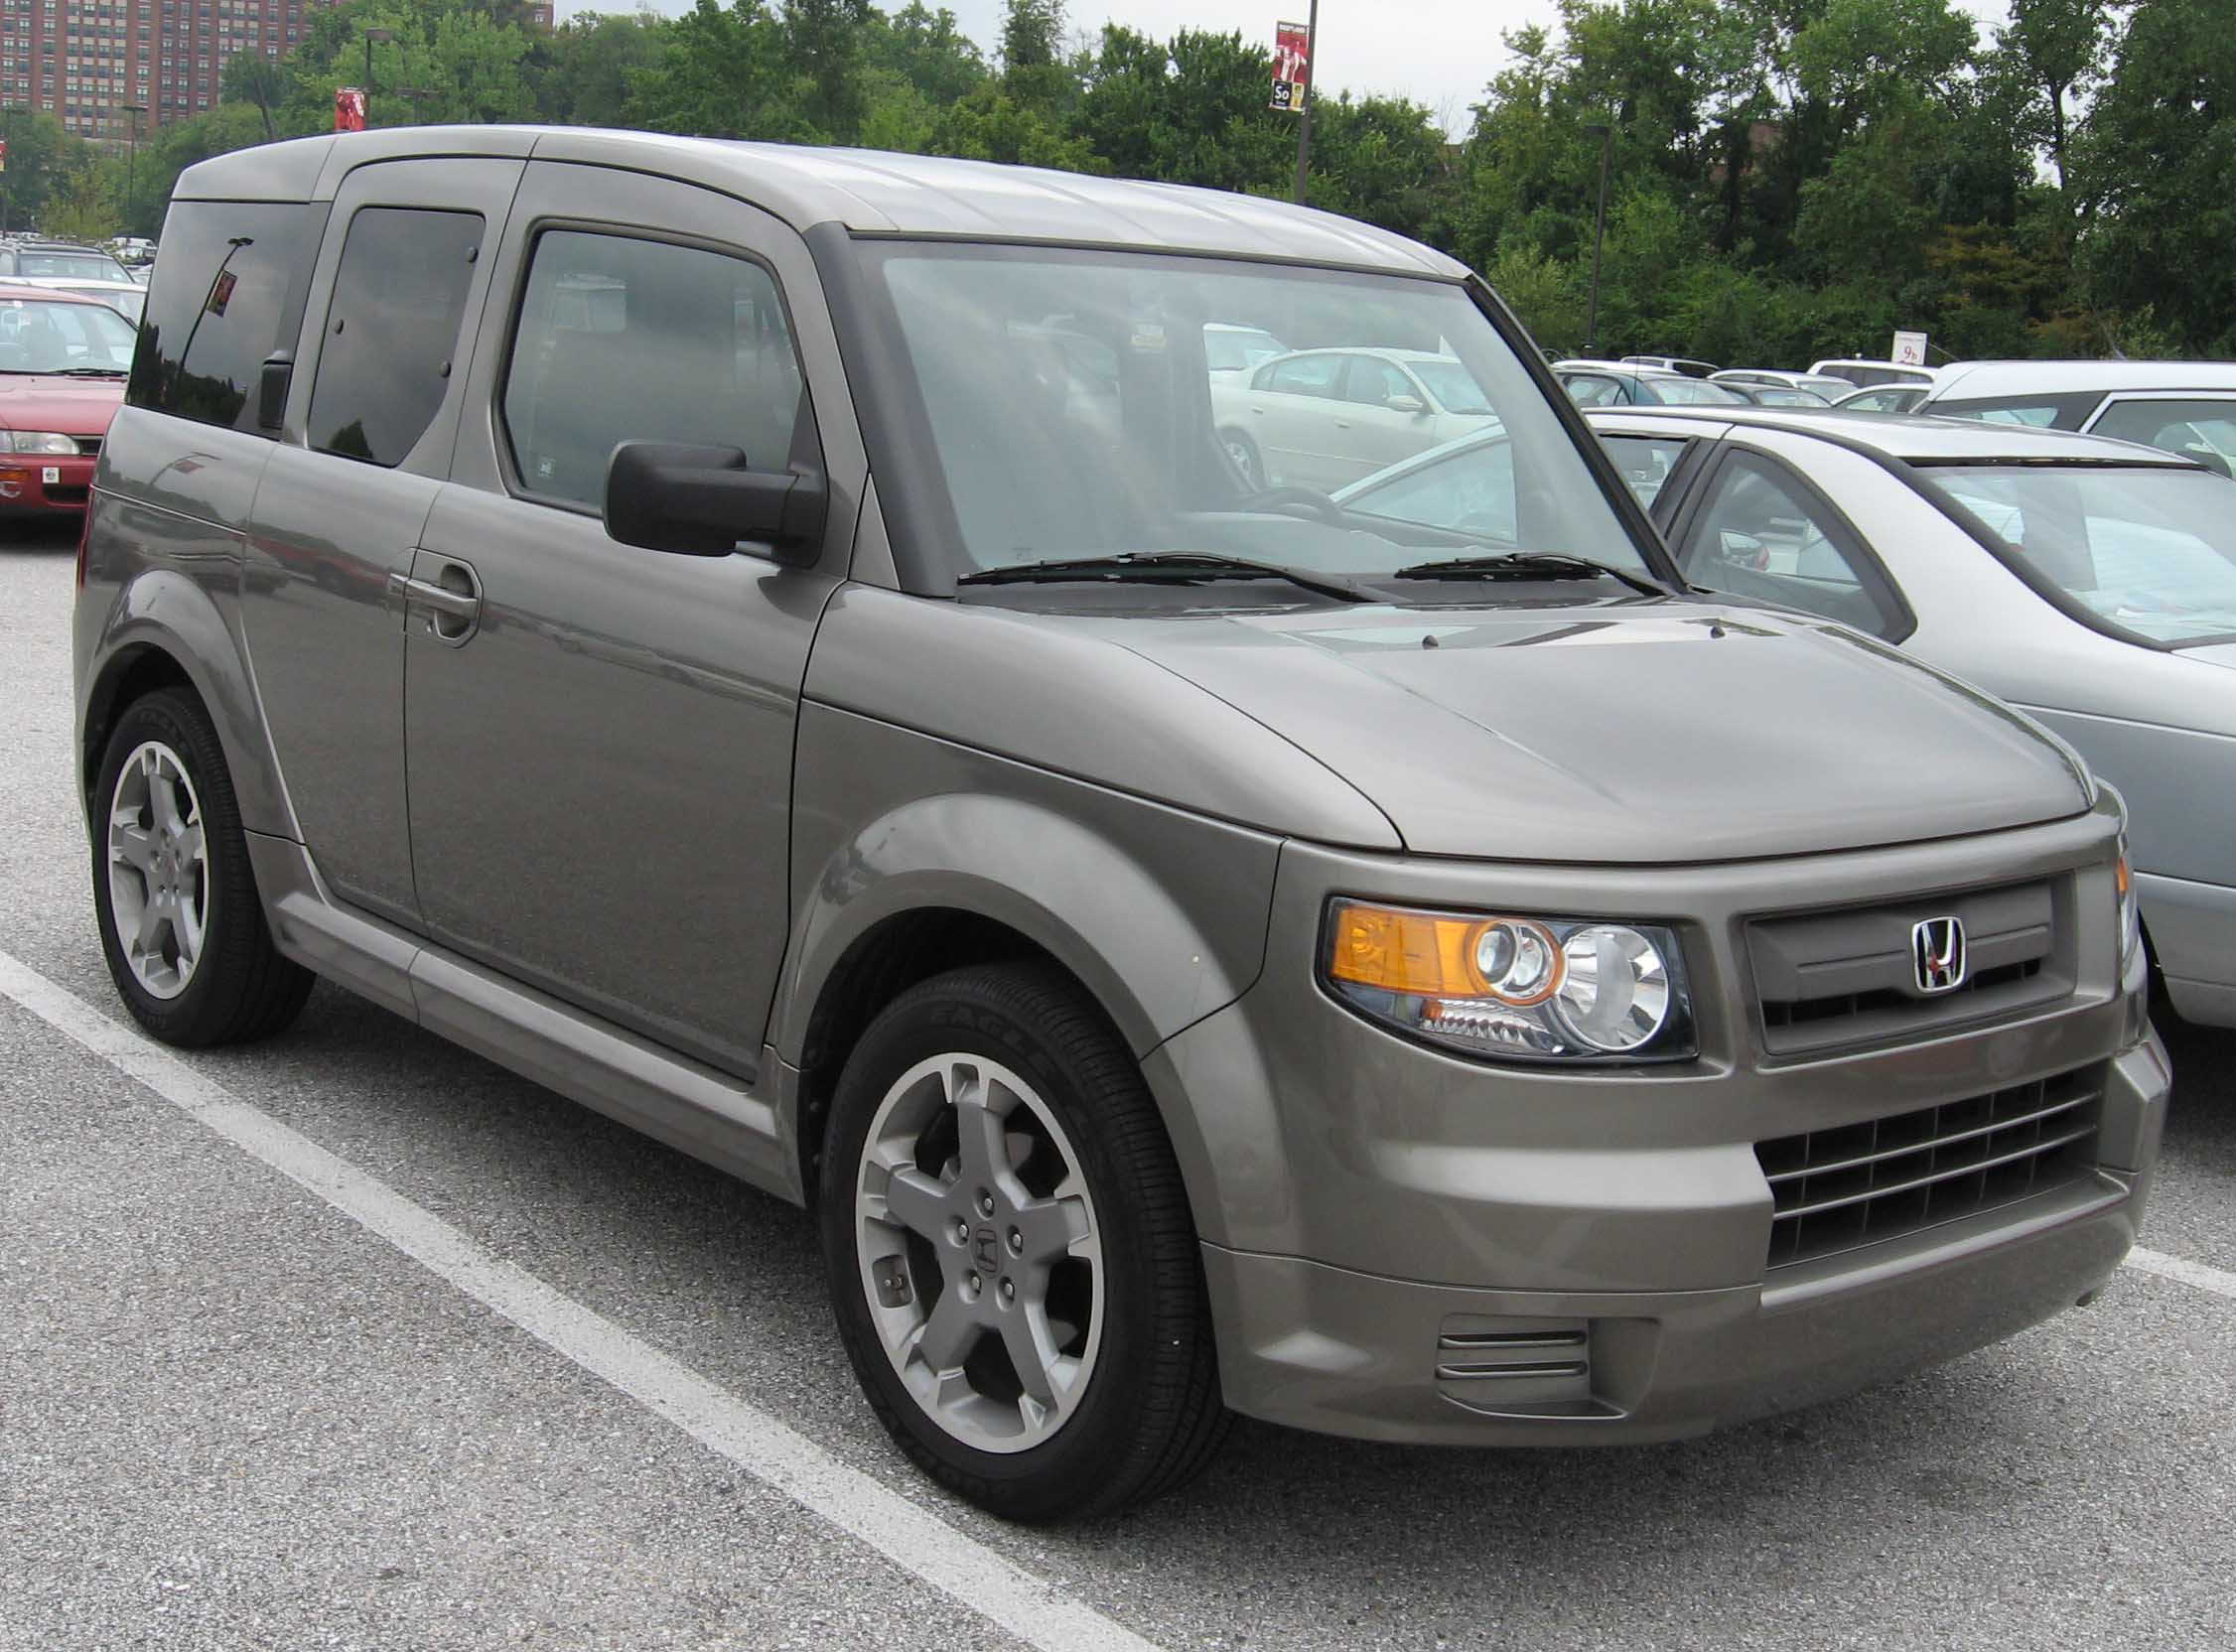 File:2007-Honda-Element-SC.jpg - Wikimedia Commons